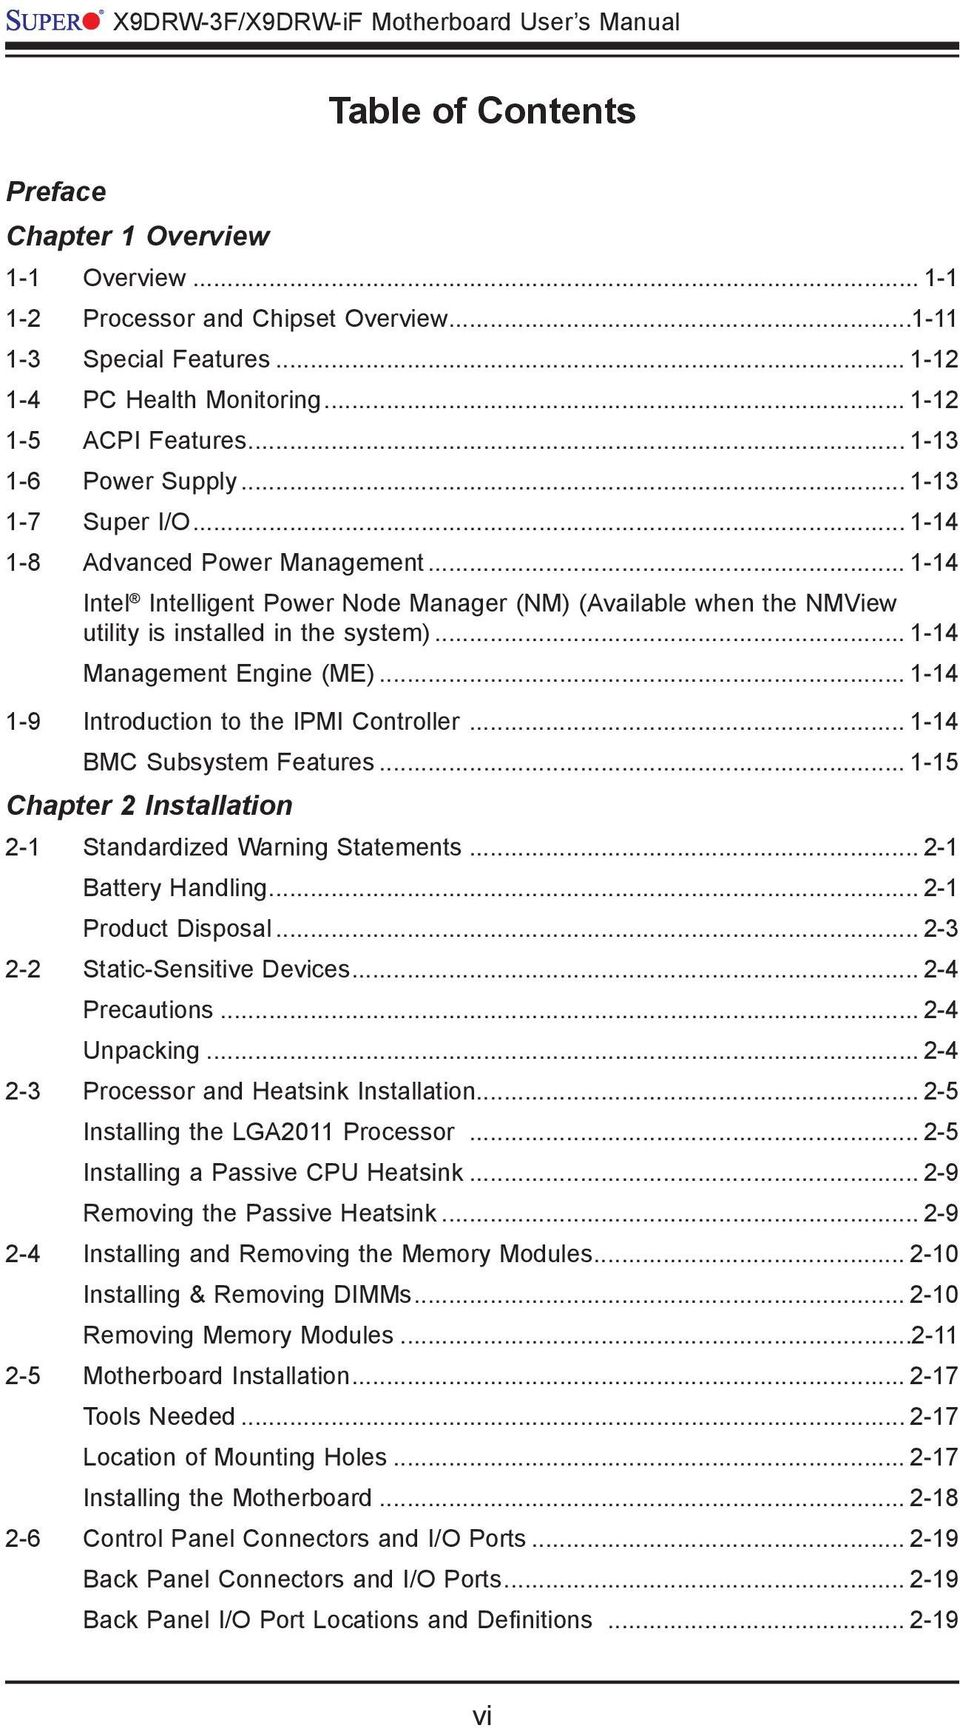 .. 1-14 Intel Intelligent Power Node Manager (NM) (Available when the NMView utility is installed in the system)... 1-14 Management Engine (ME)... 1-14 1-9 Introduction to the IPMI Controller.